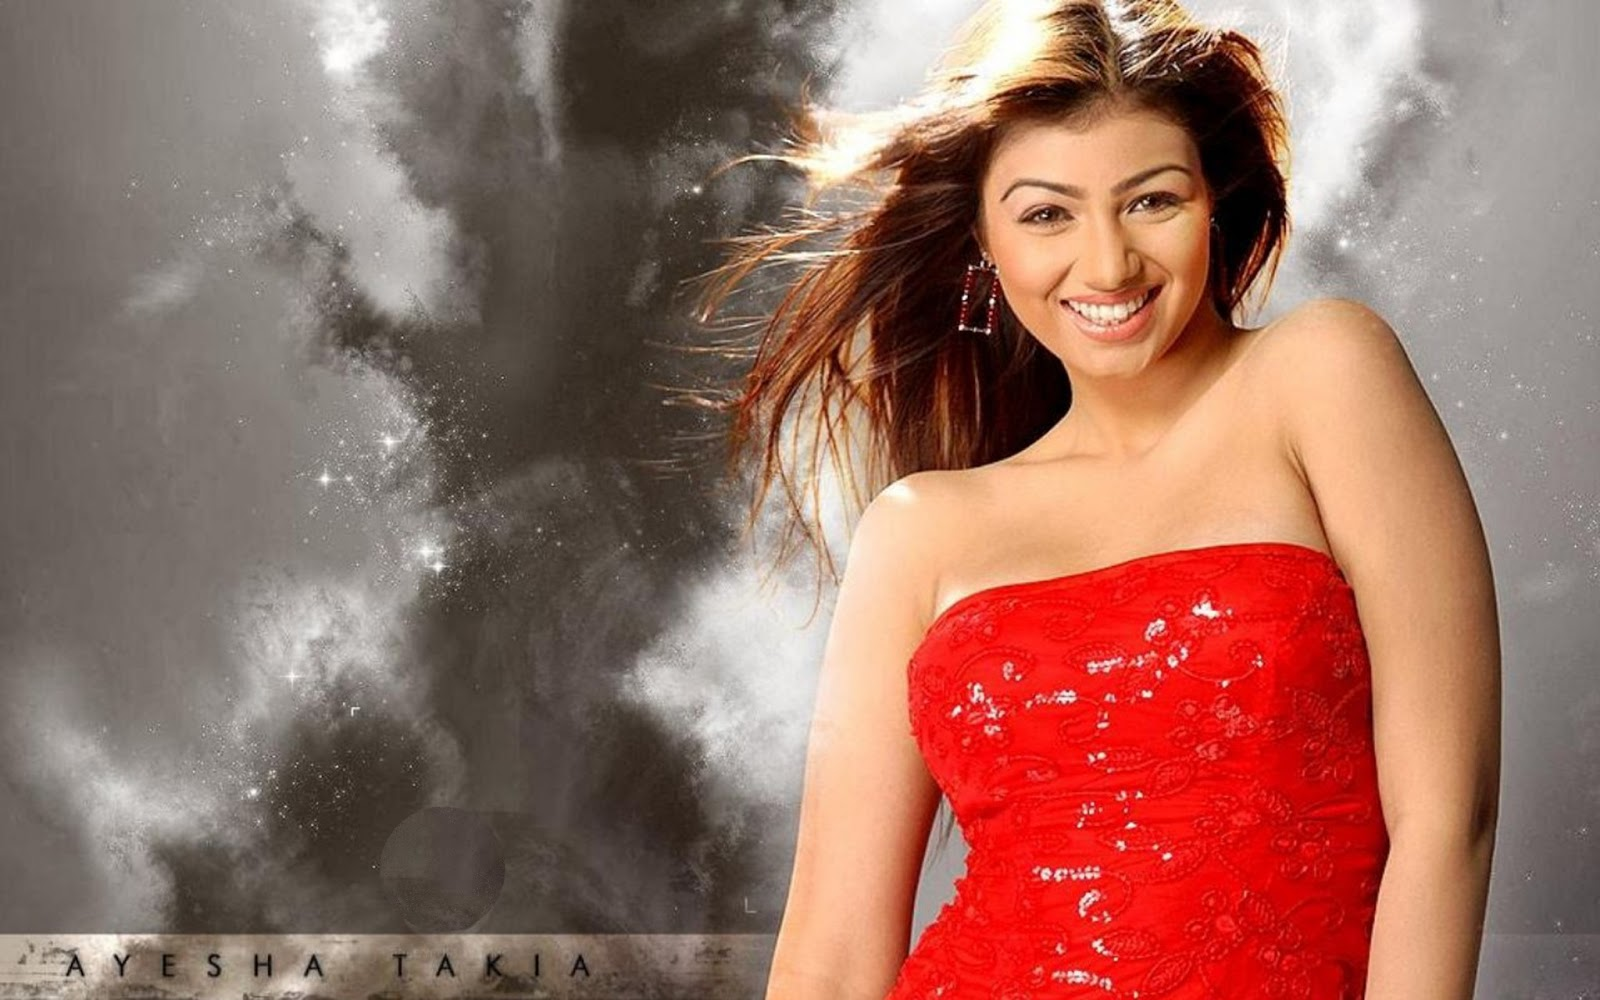 Hd Wallpapers Fine Ayesha Takia Hot Hd Photo Gallery Free -2376